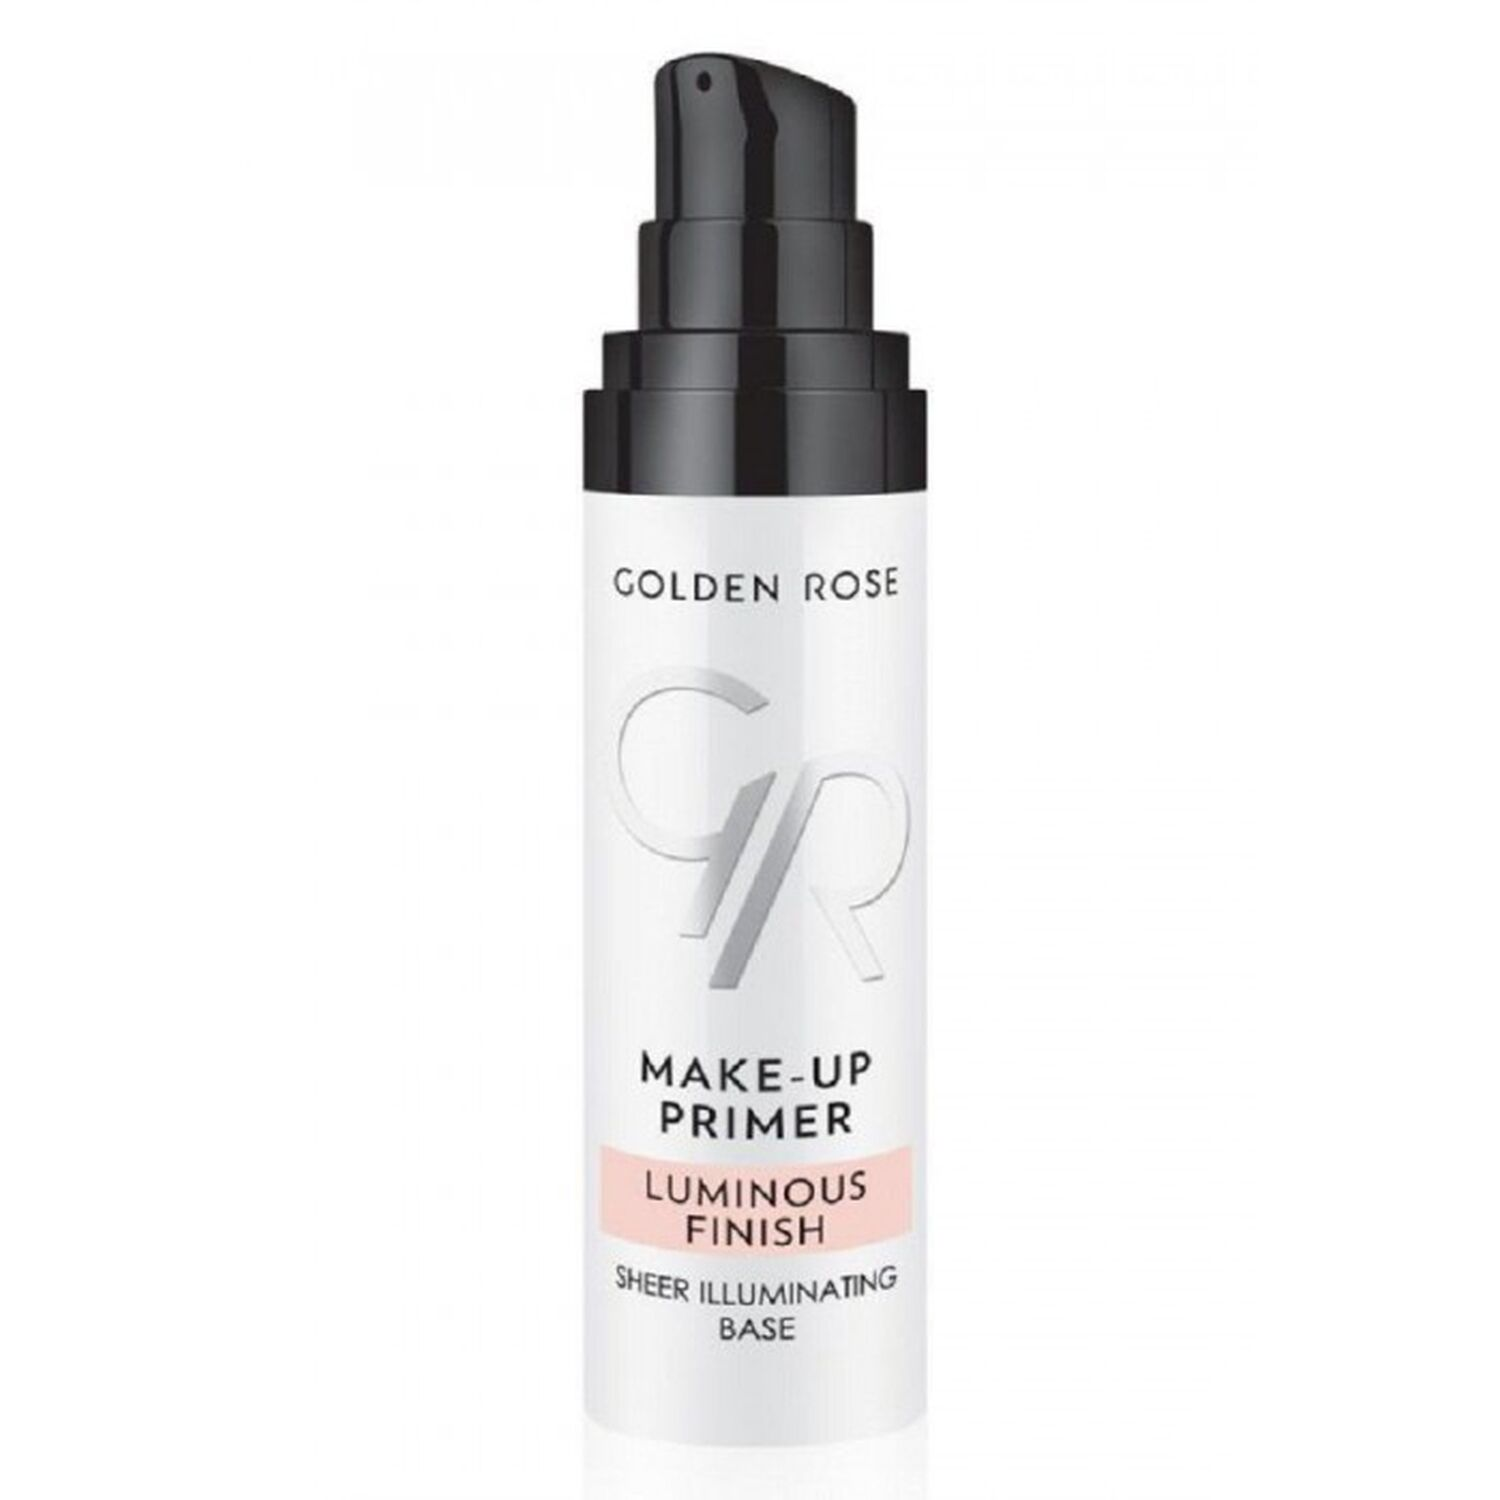 Golden Rose - Make up Primer / Grundierung 30ml GR-LUM